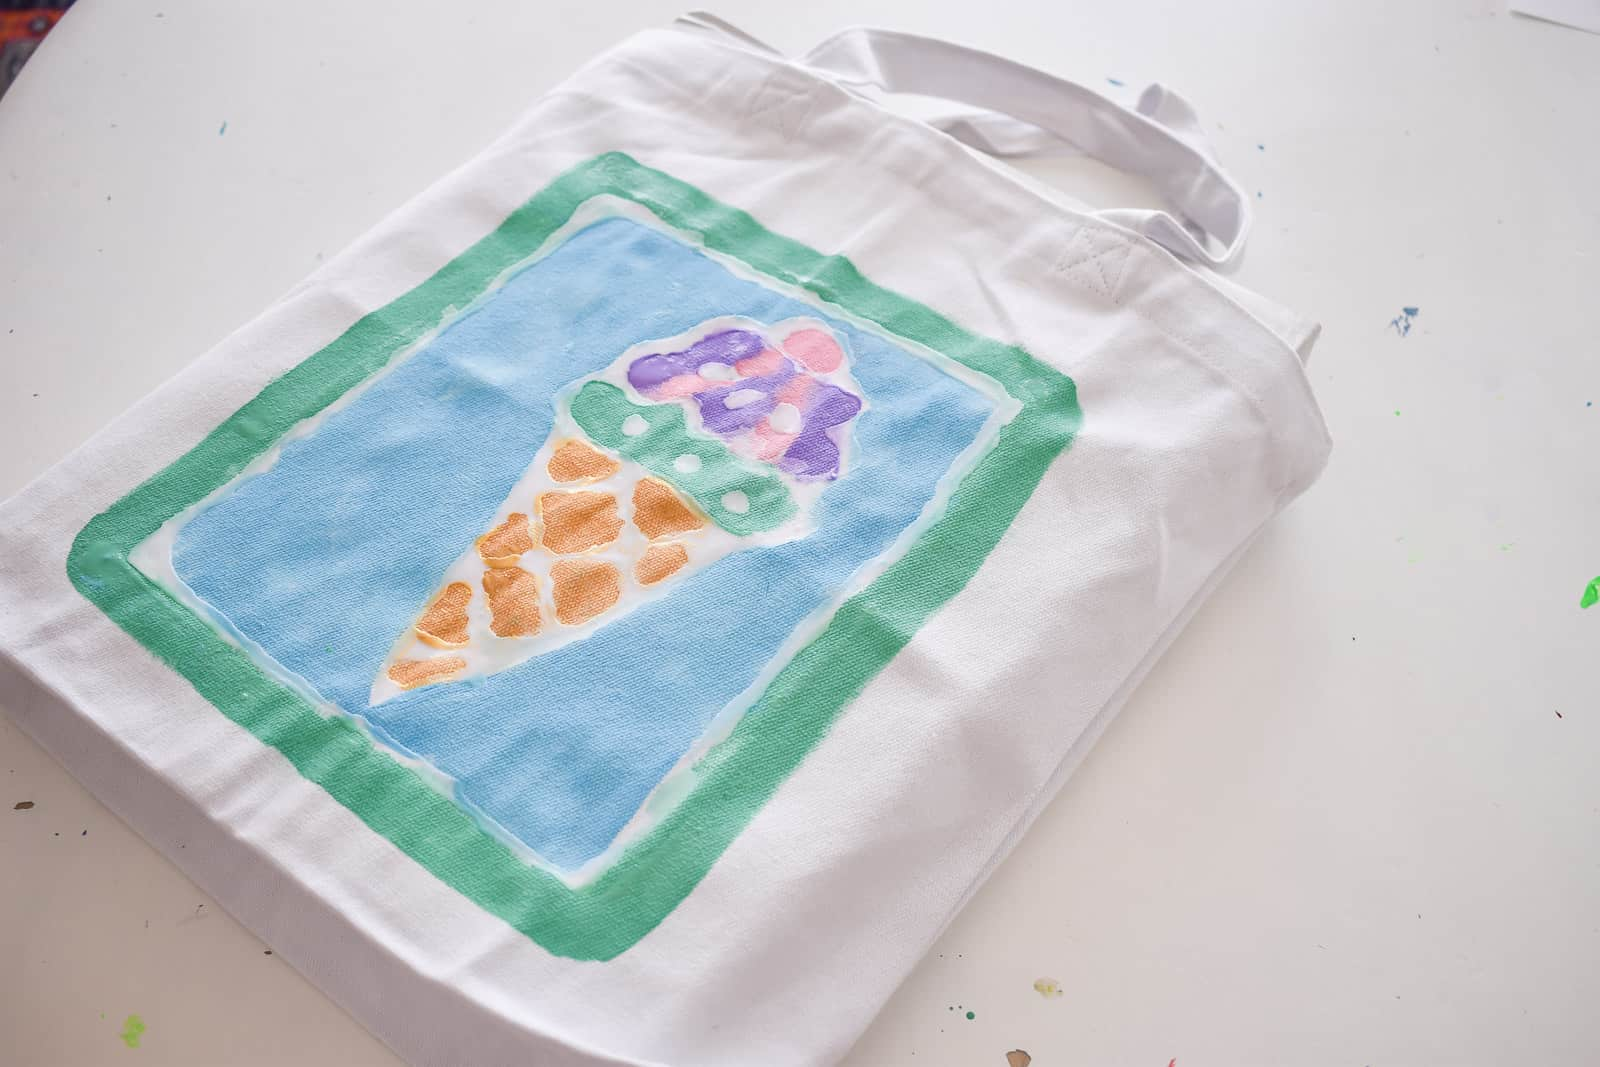 Painting the tote bag